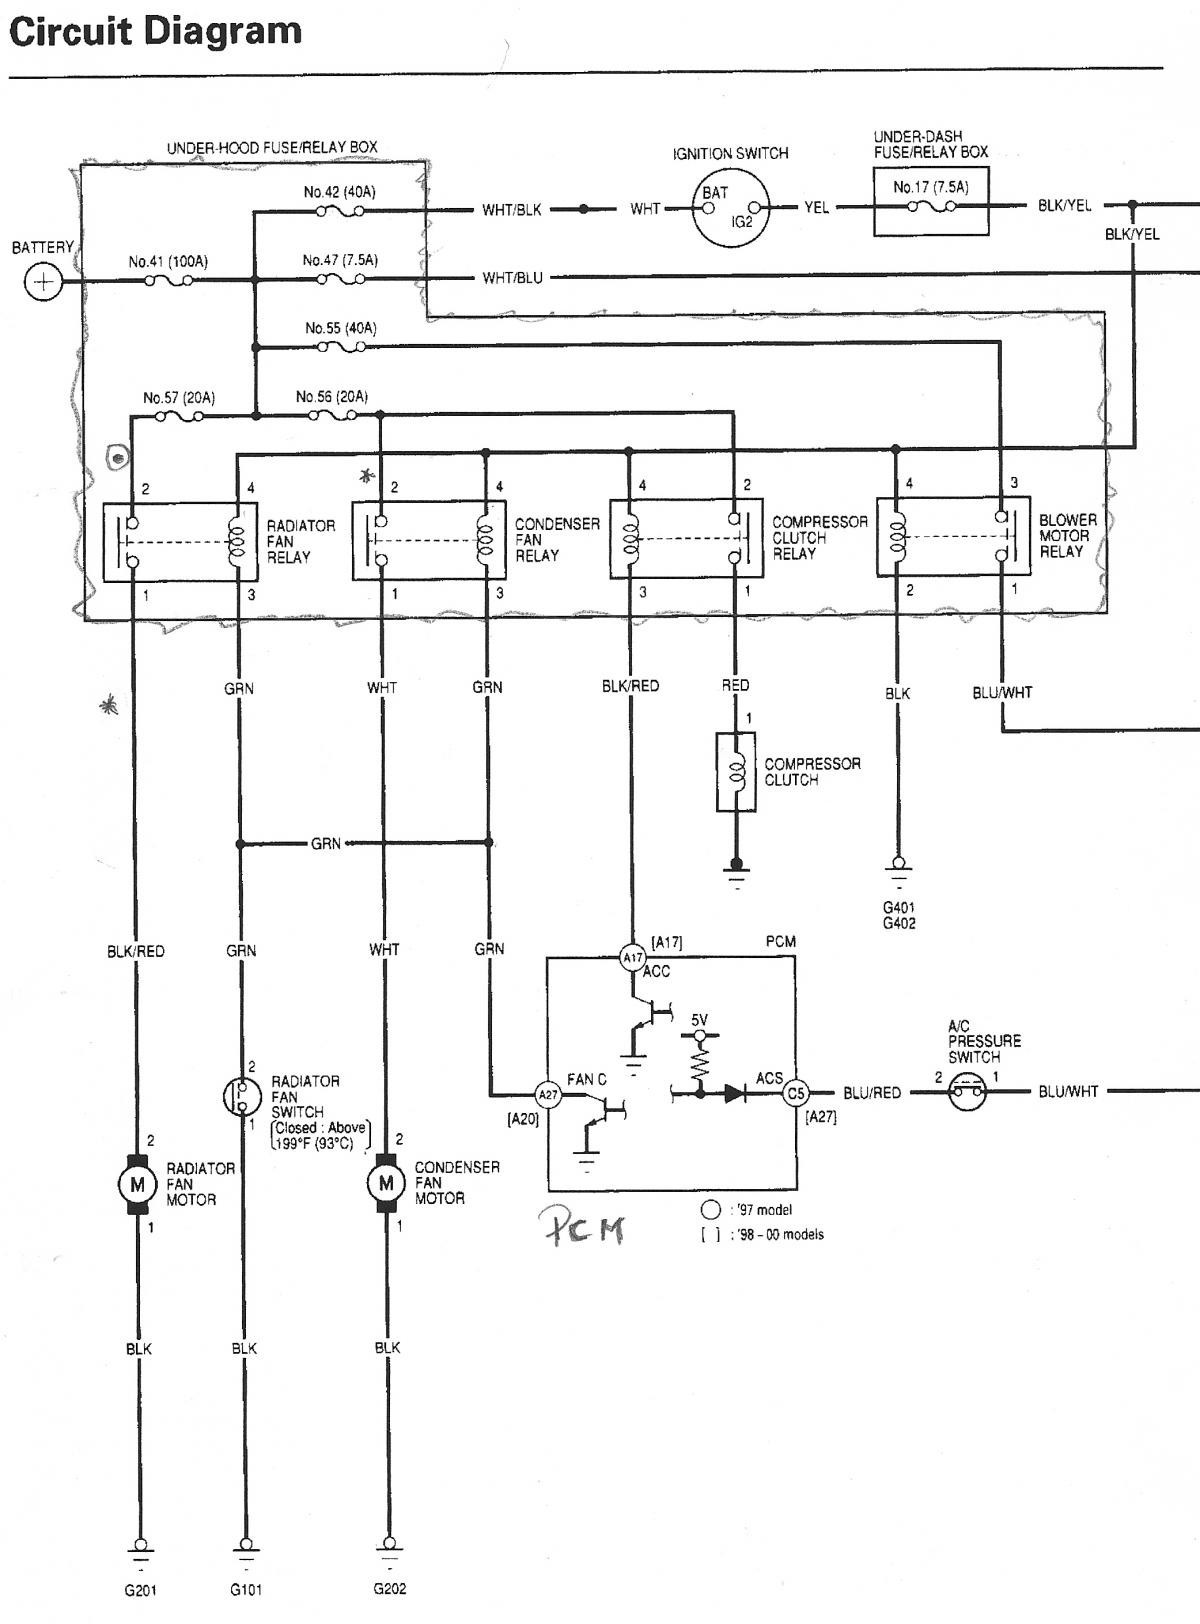 hight resolution of 2004 honda cr v engine wiring diagram wiring library engine cooling system diagram also honda element transmission diagram